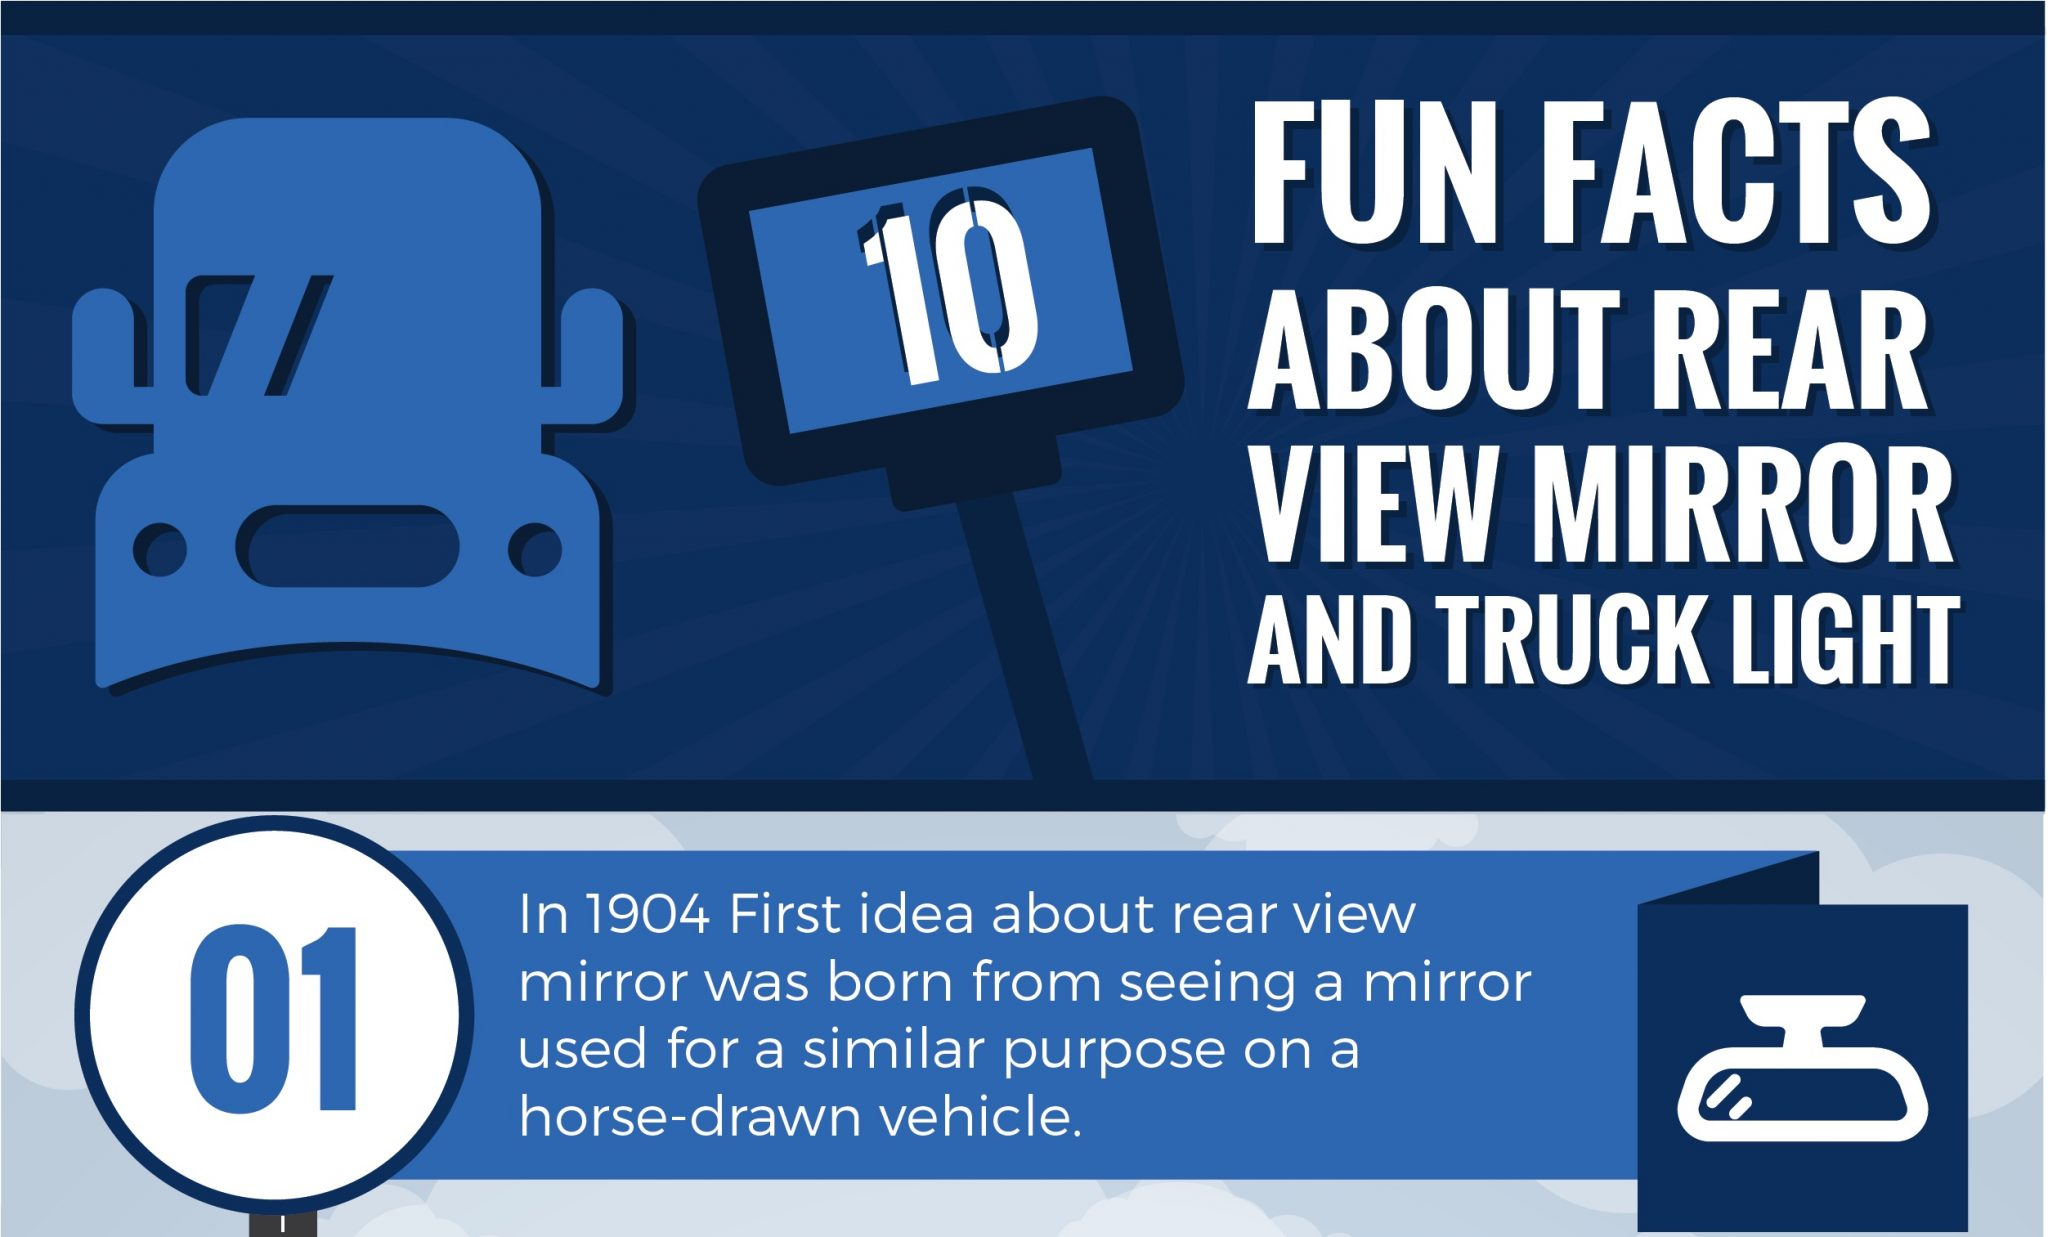 INFOGRAPHIC: 10 Fun Facts About Rear View Mirrors and Truck Lights